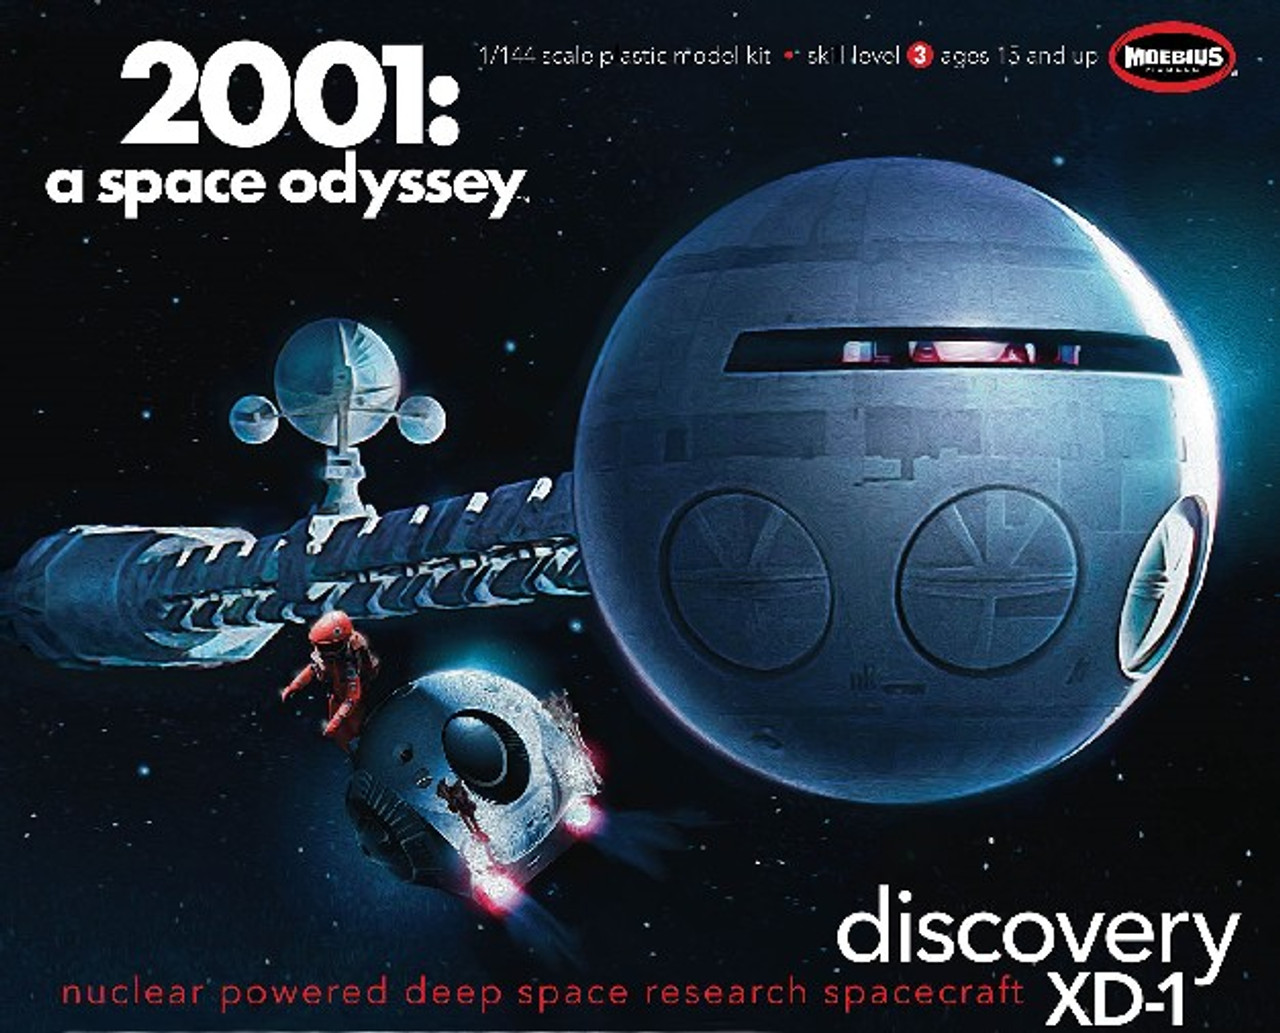 MOE-20013  1/144 2001 Space Odyssey: Discovery XD1 Nuclear Powered Deep Space Re